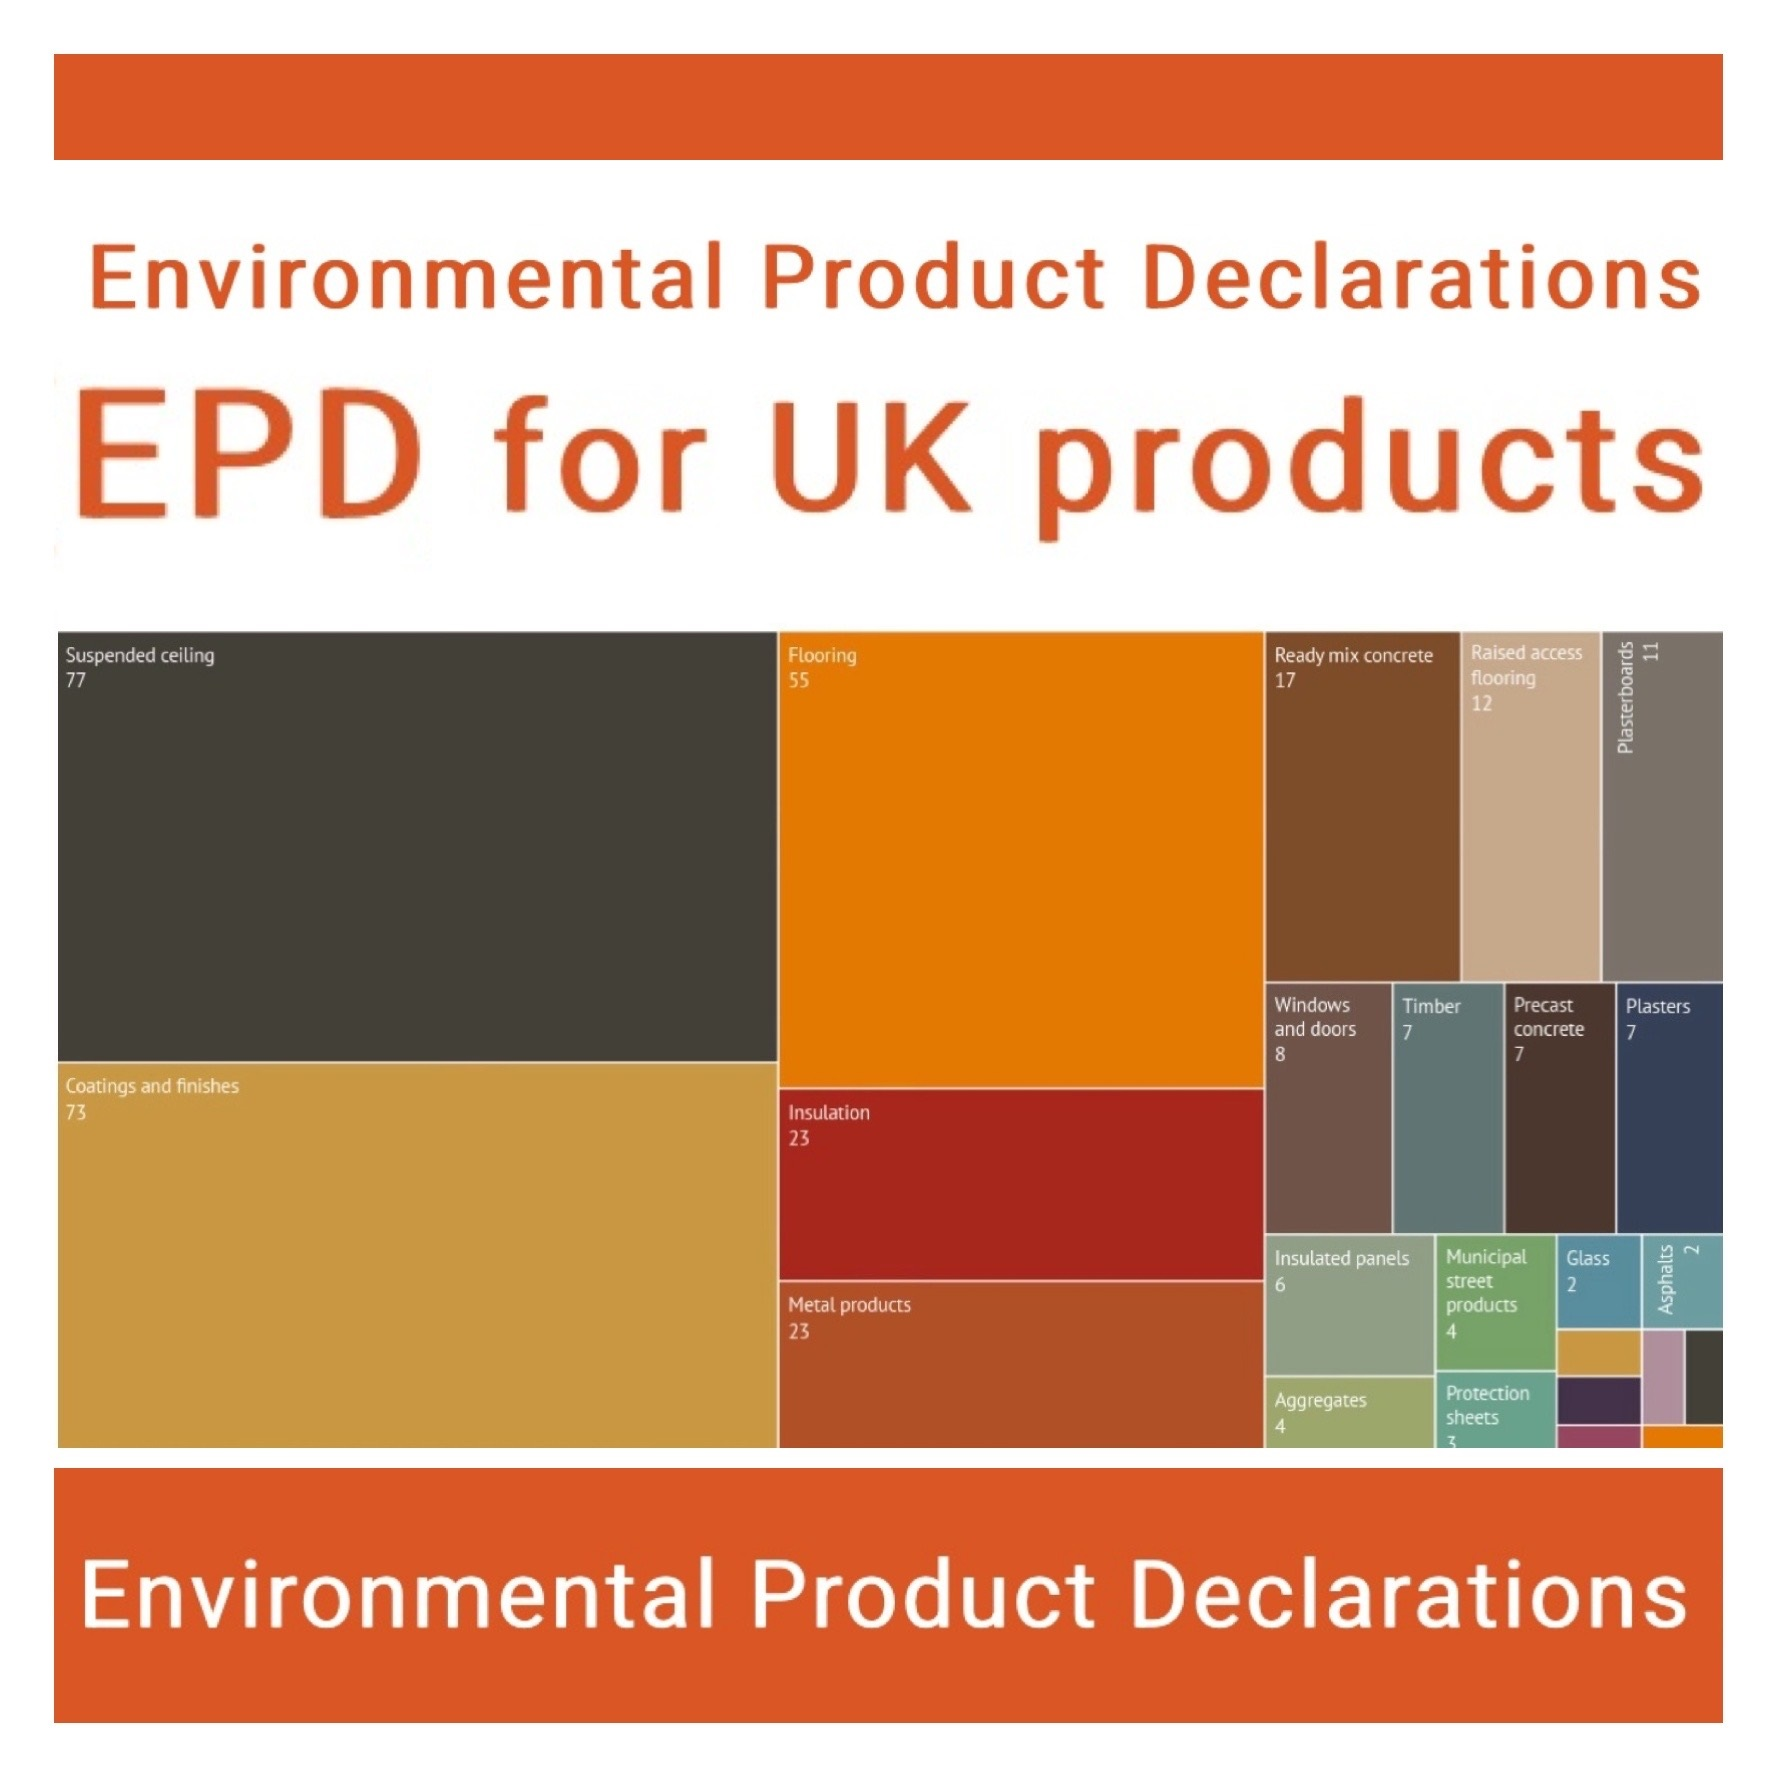 Environmental Product Declarations (EPD) for UK products